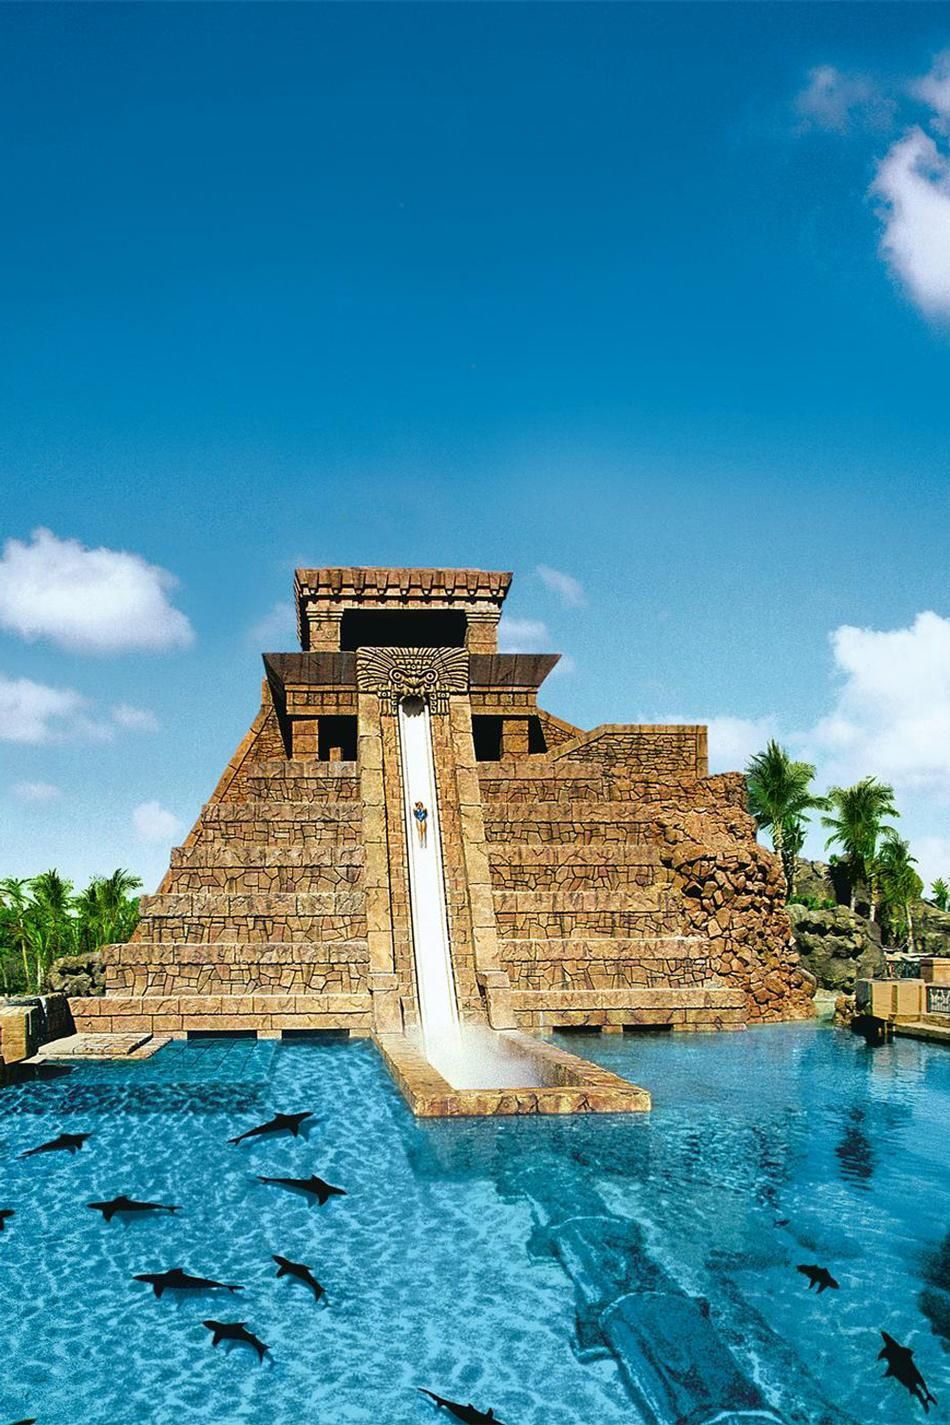 Water Slide, Atlantis, Bahamas Vacation Ideas..great Place To Go In Off